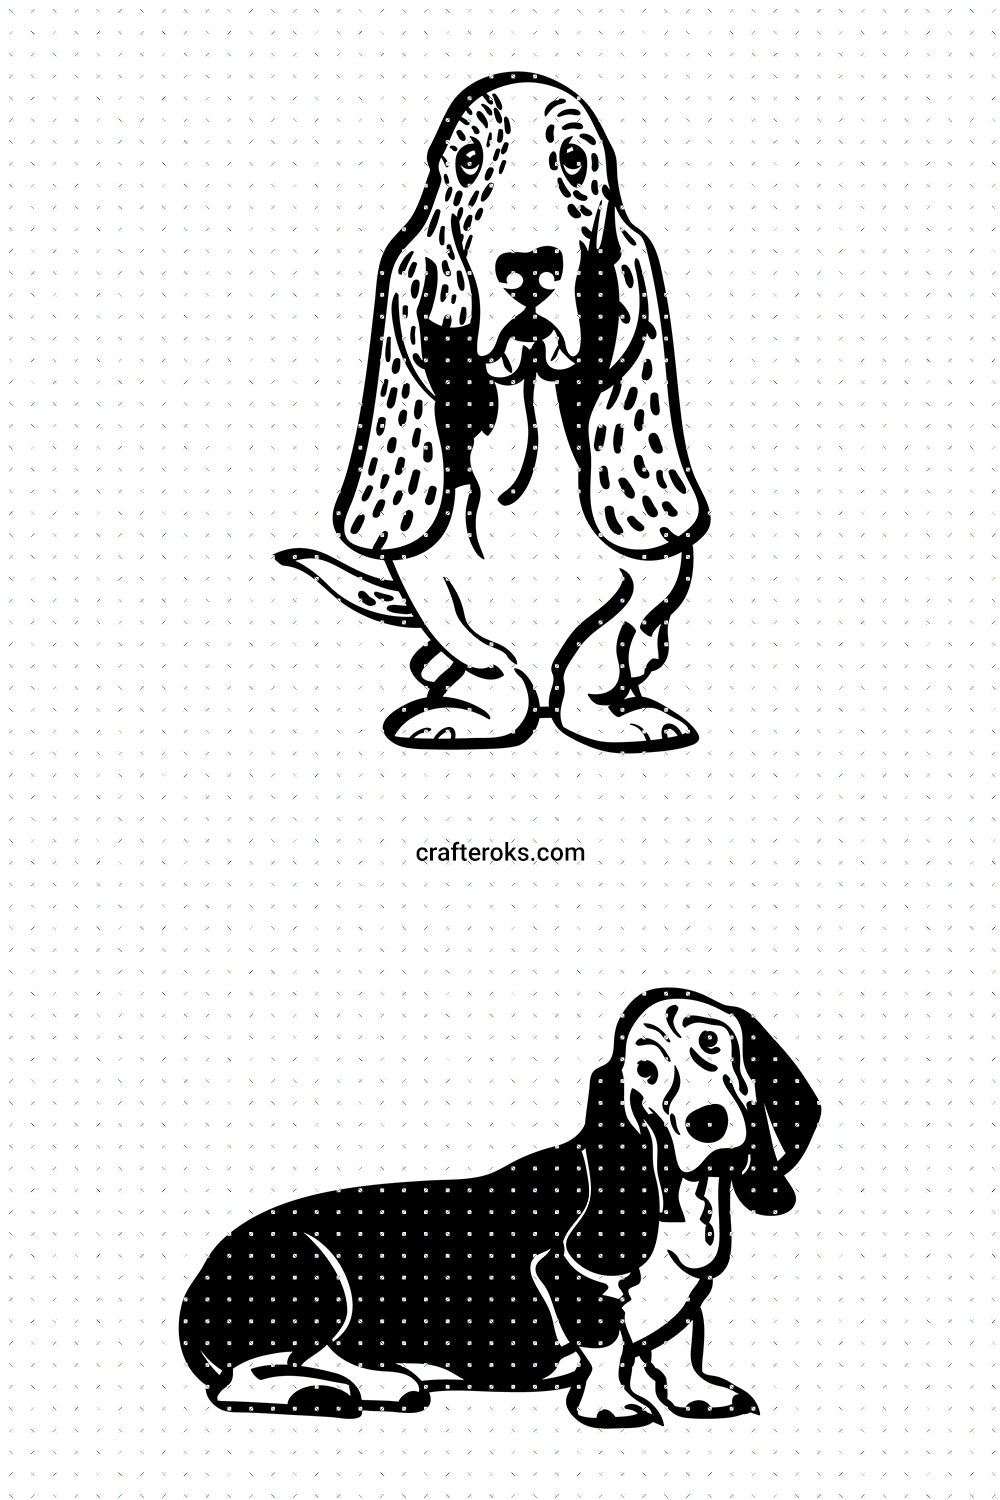 Basset Hound SVG, PNG, DXF, clipart, EPS, vector cut file instant download